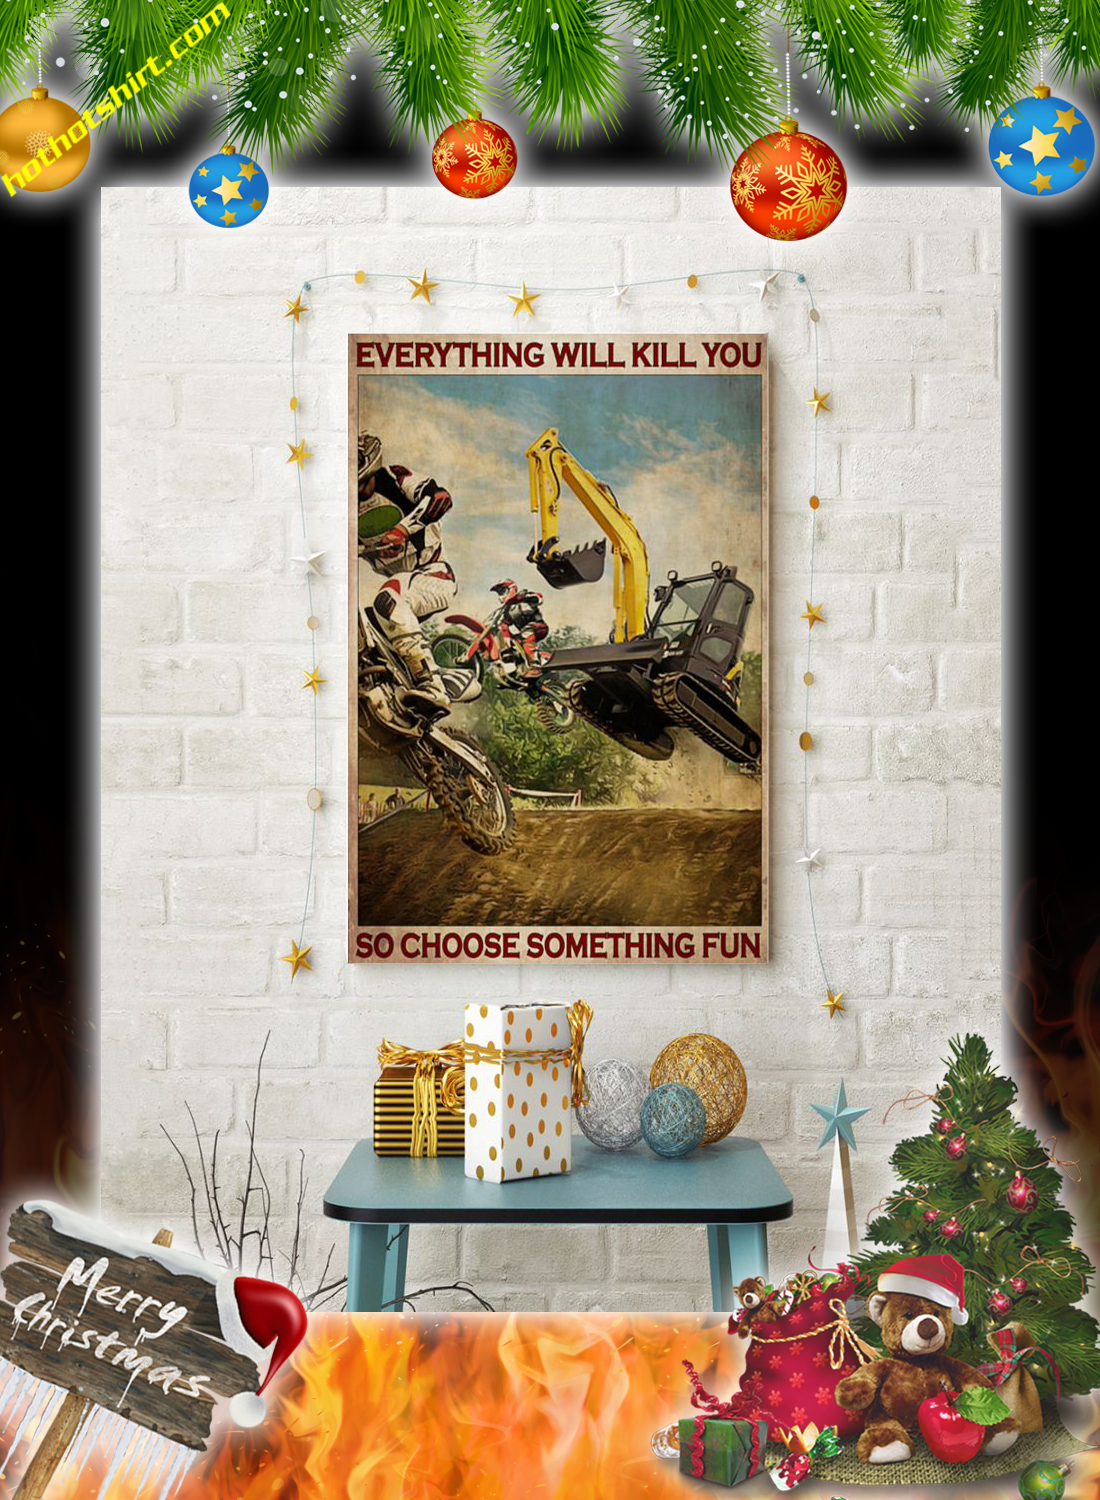 Motocross and excavator everything will kill you so choose something fun poster 2